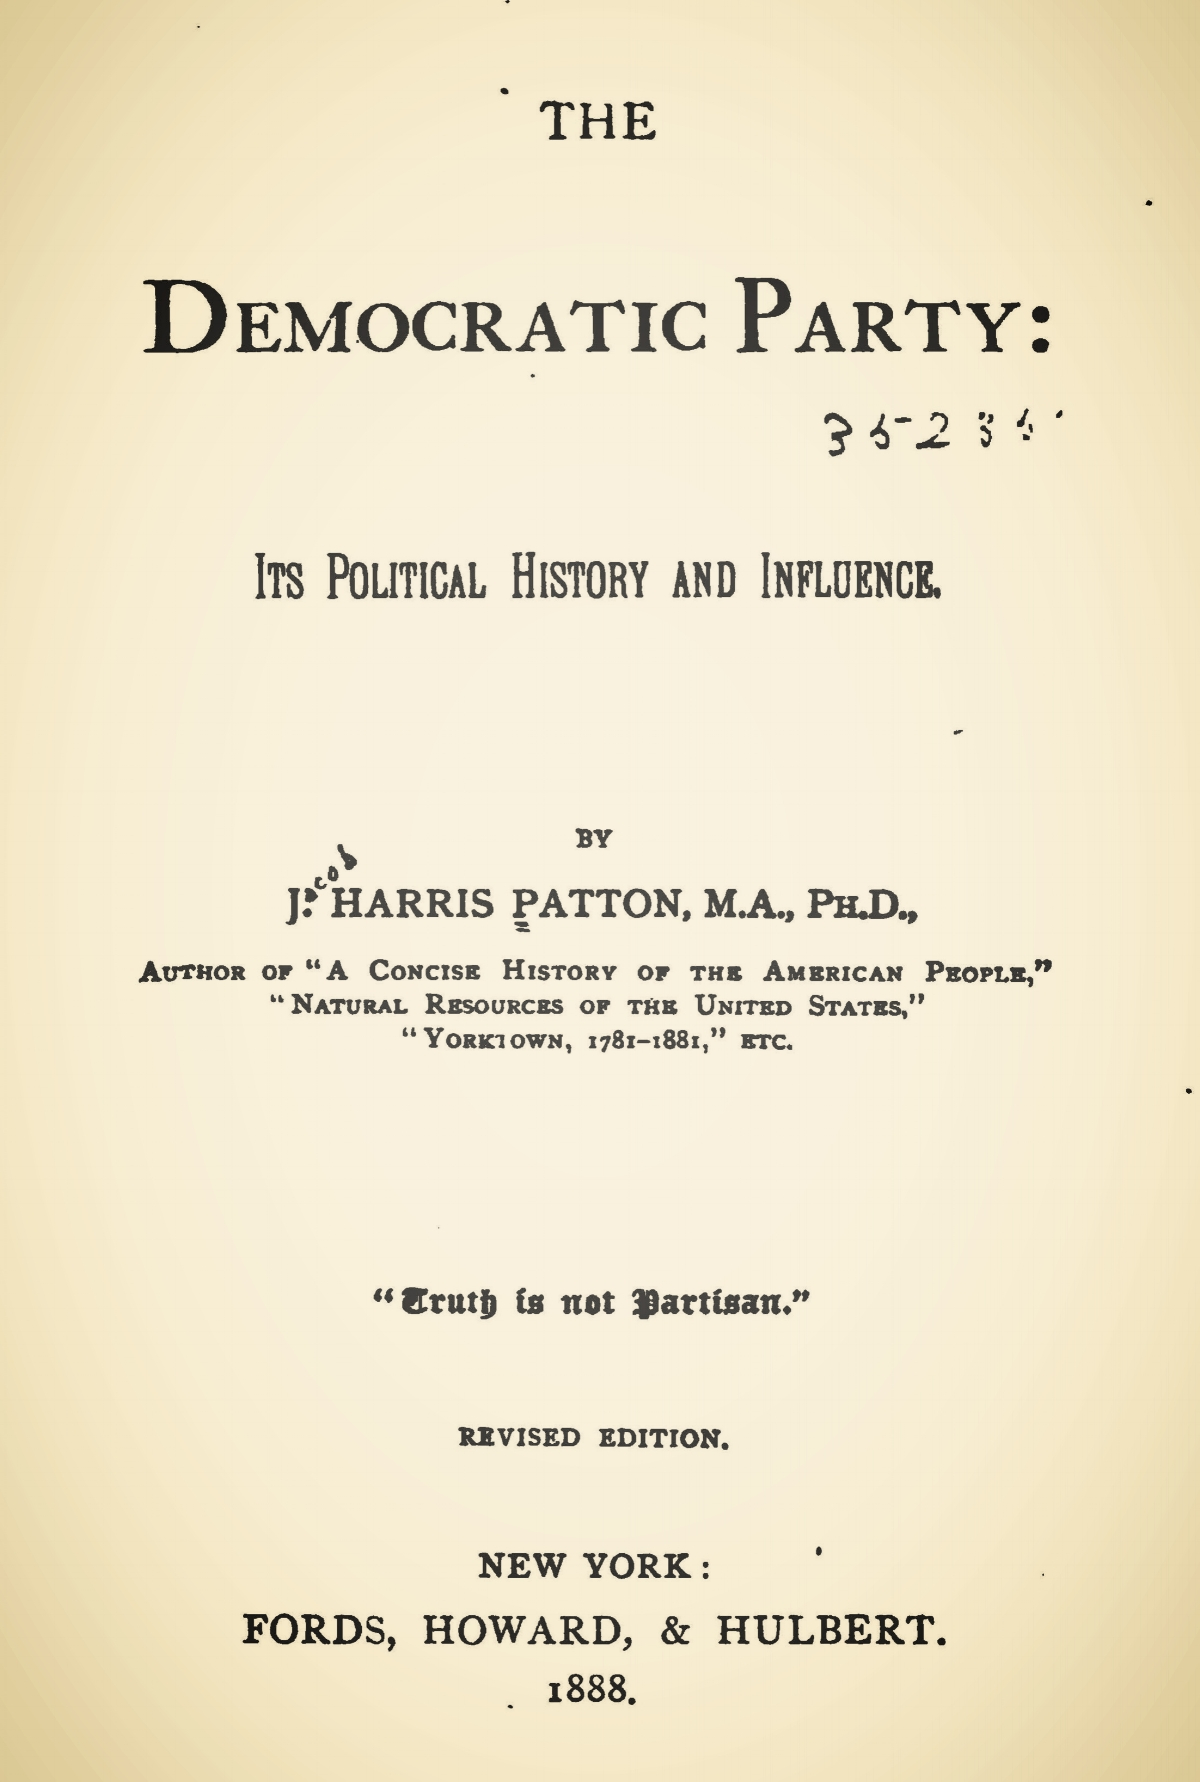 Patton, Jacob Harris, The Democratic Party Its Political History and Influence Title Page.jpg